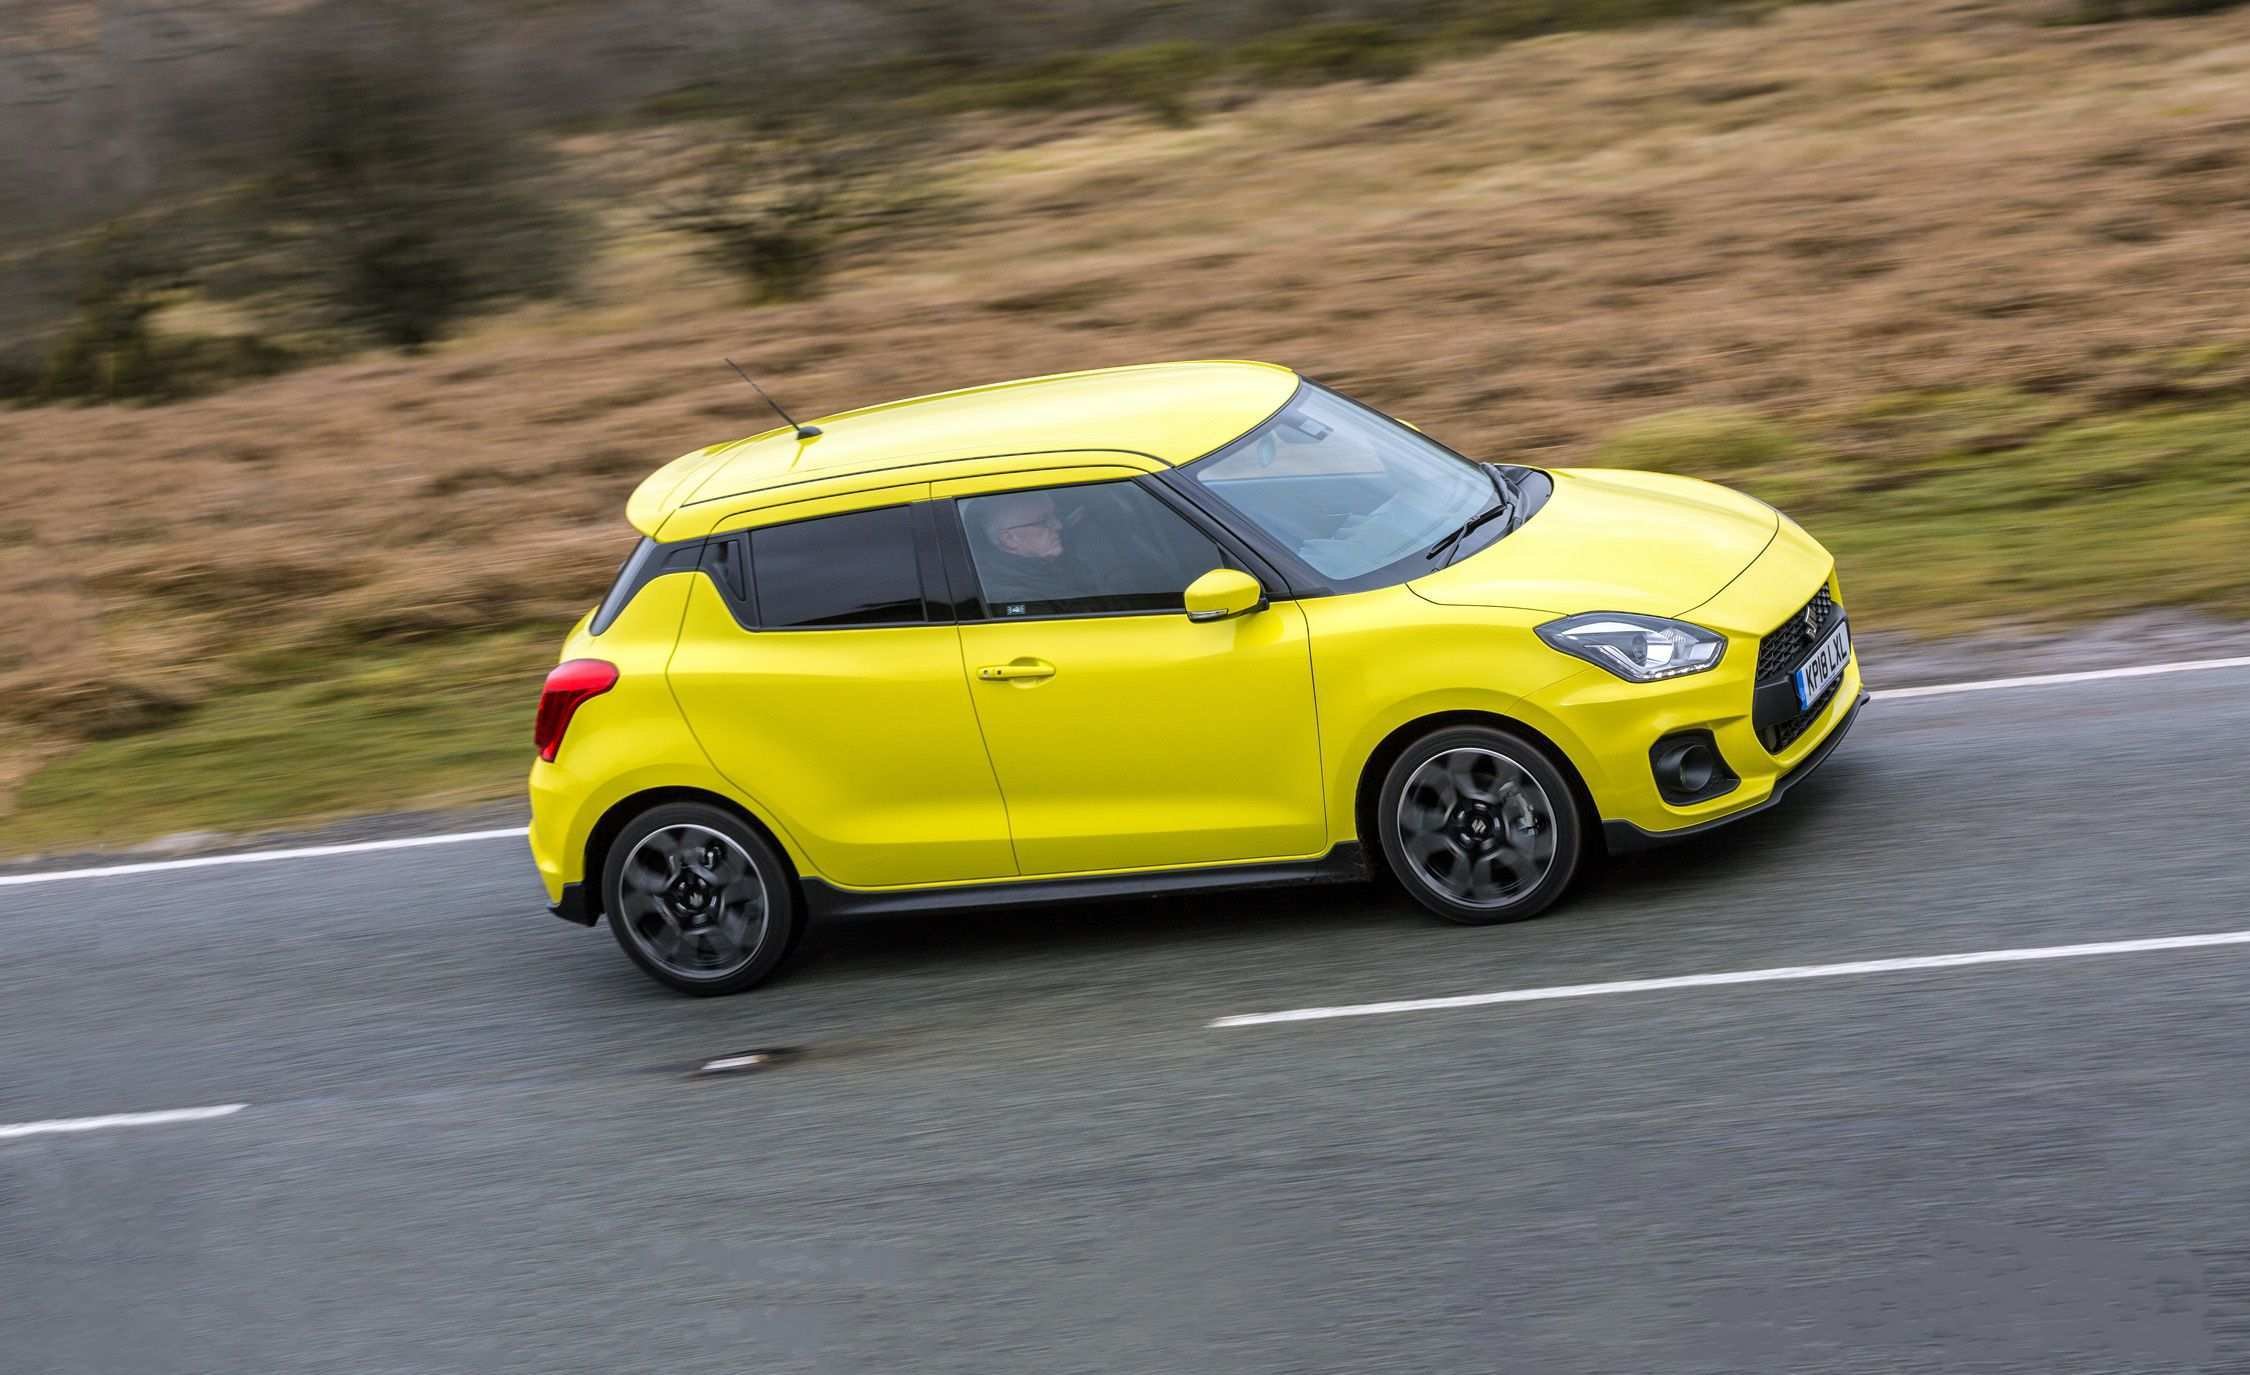 53 Gallery of 2019 Suzuki Swift Sport Specs Specs with 2019 Suzuki Swift Sport Specs